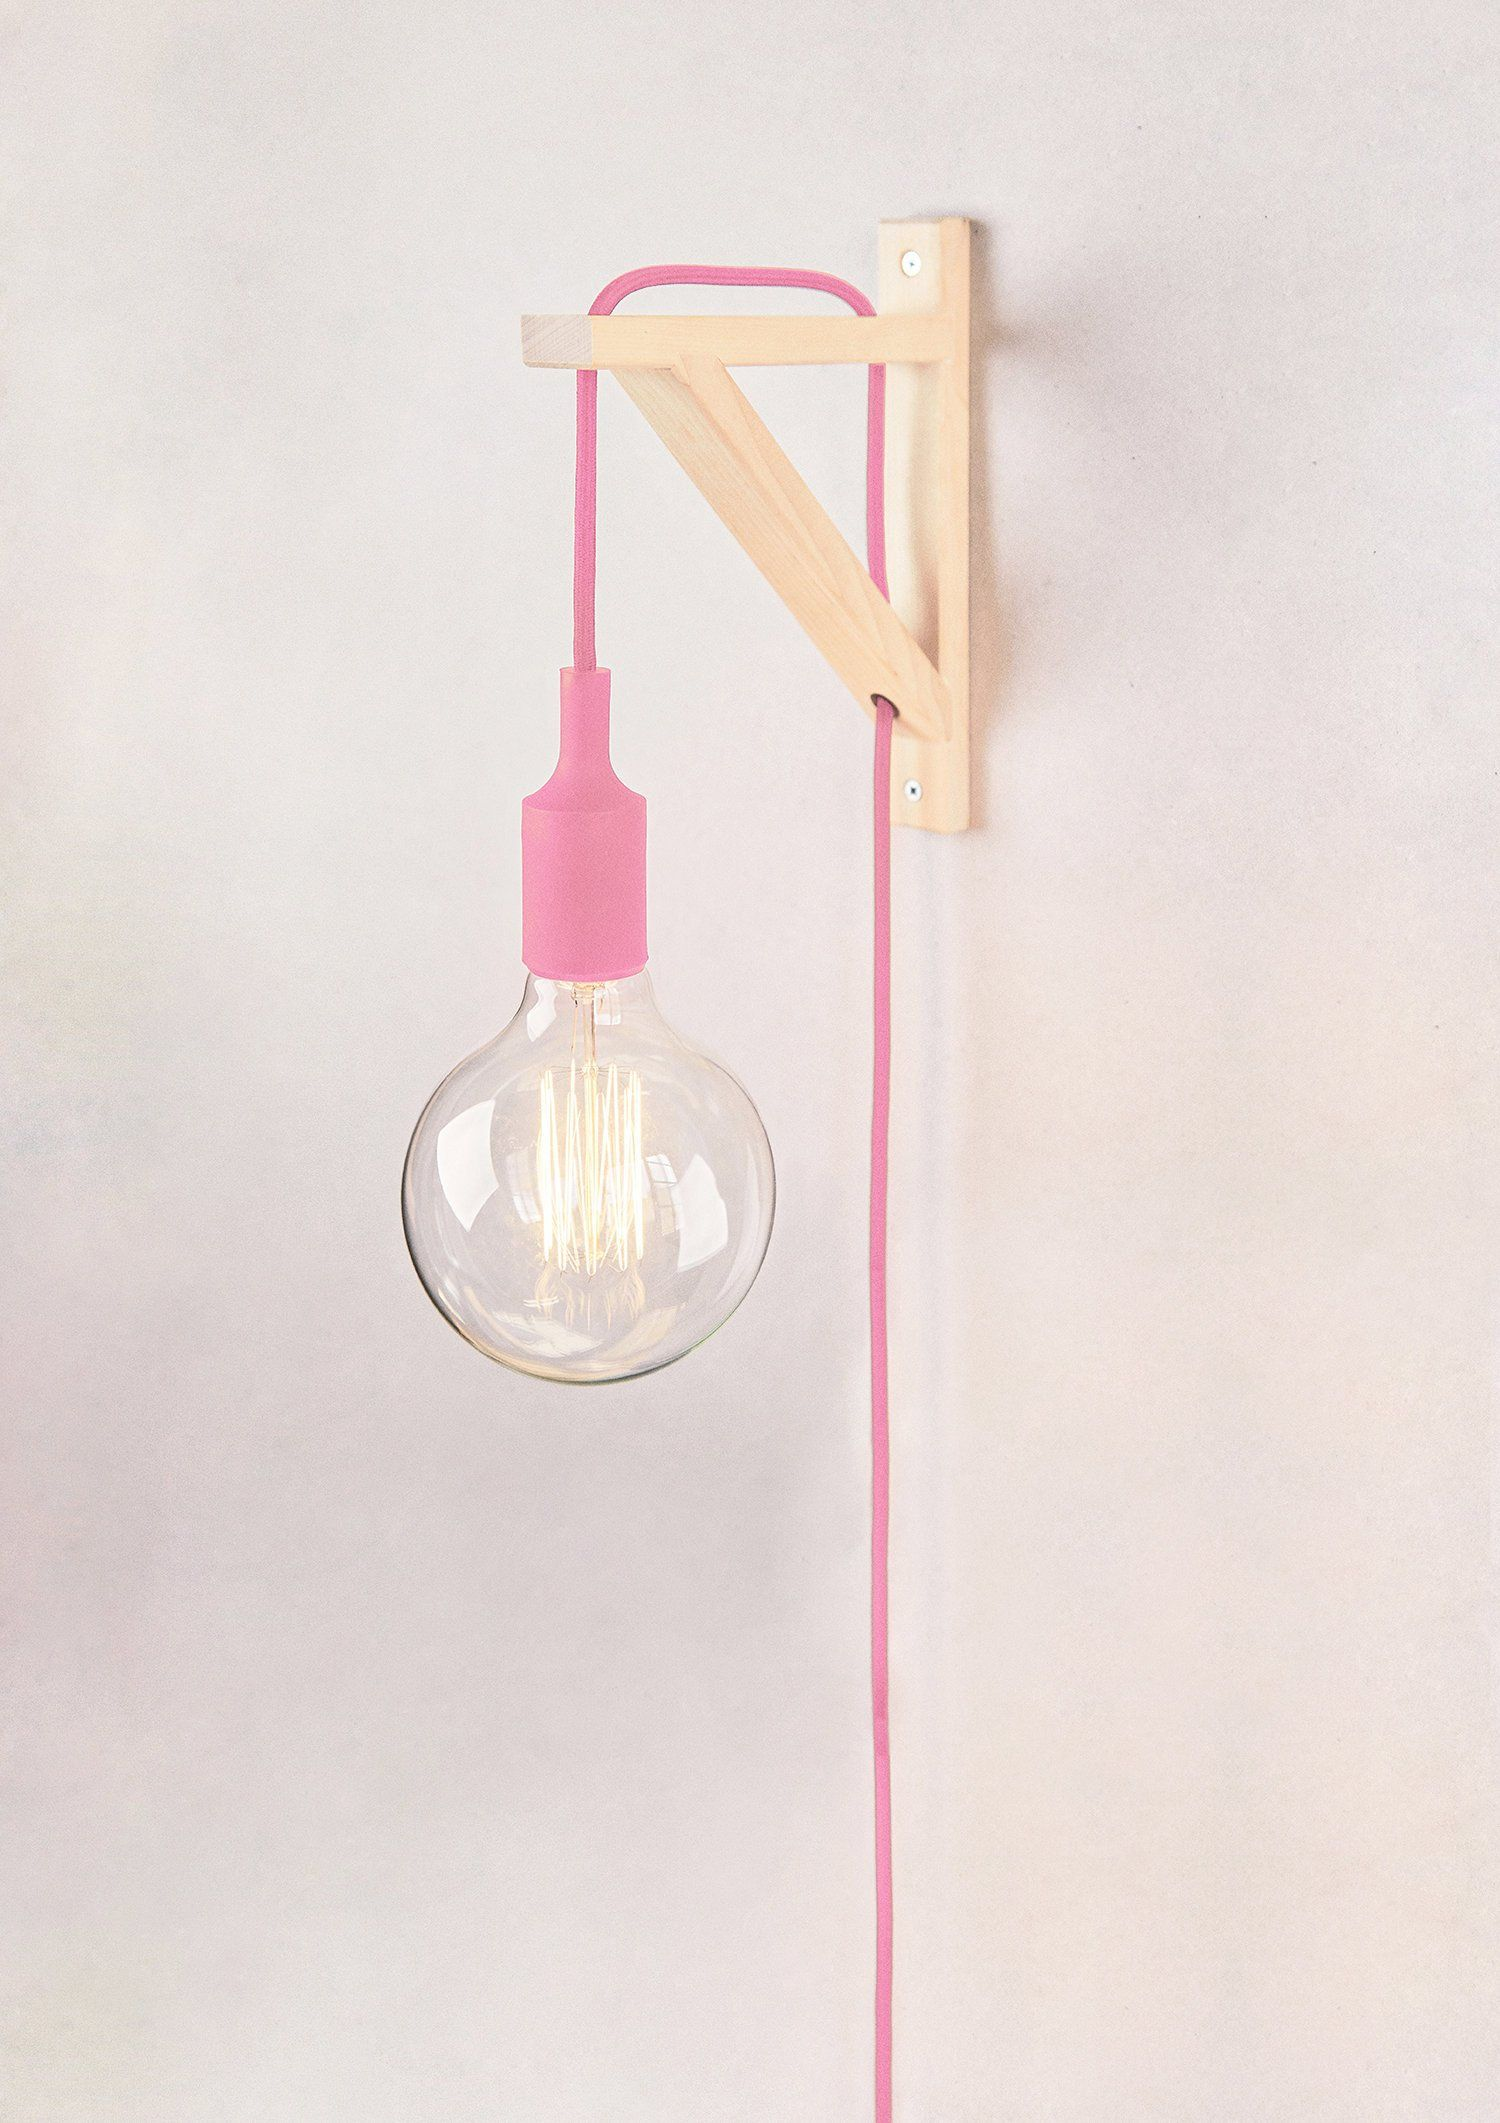 Plug In Wall Sconce Bracket Sconce Plug In Wall Sconce Pink Cord Sconce In 2020 Plug In Wall Lights Plug In Wall Sconce Wall Lights